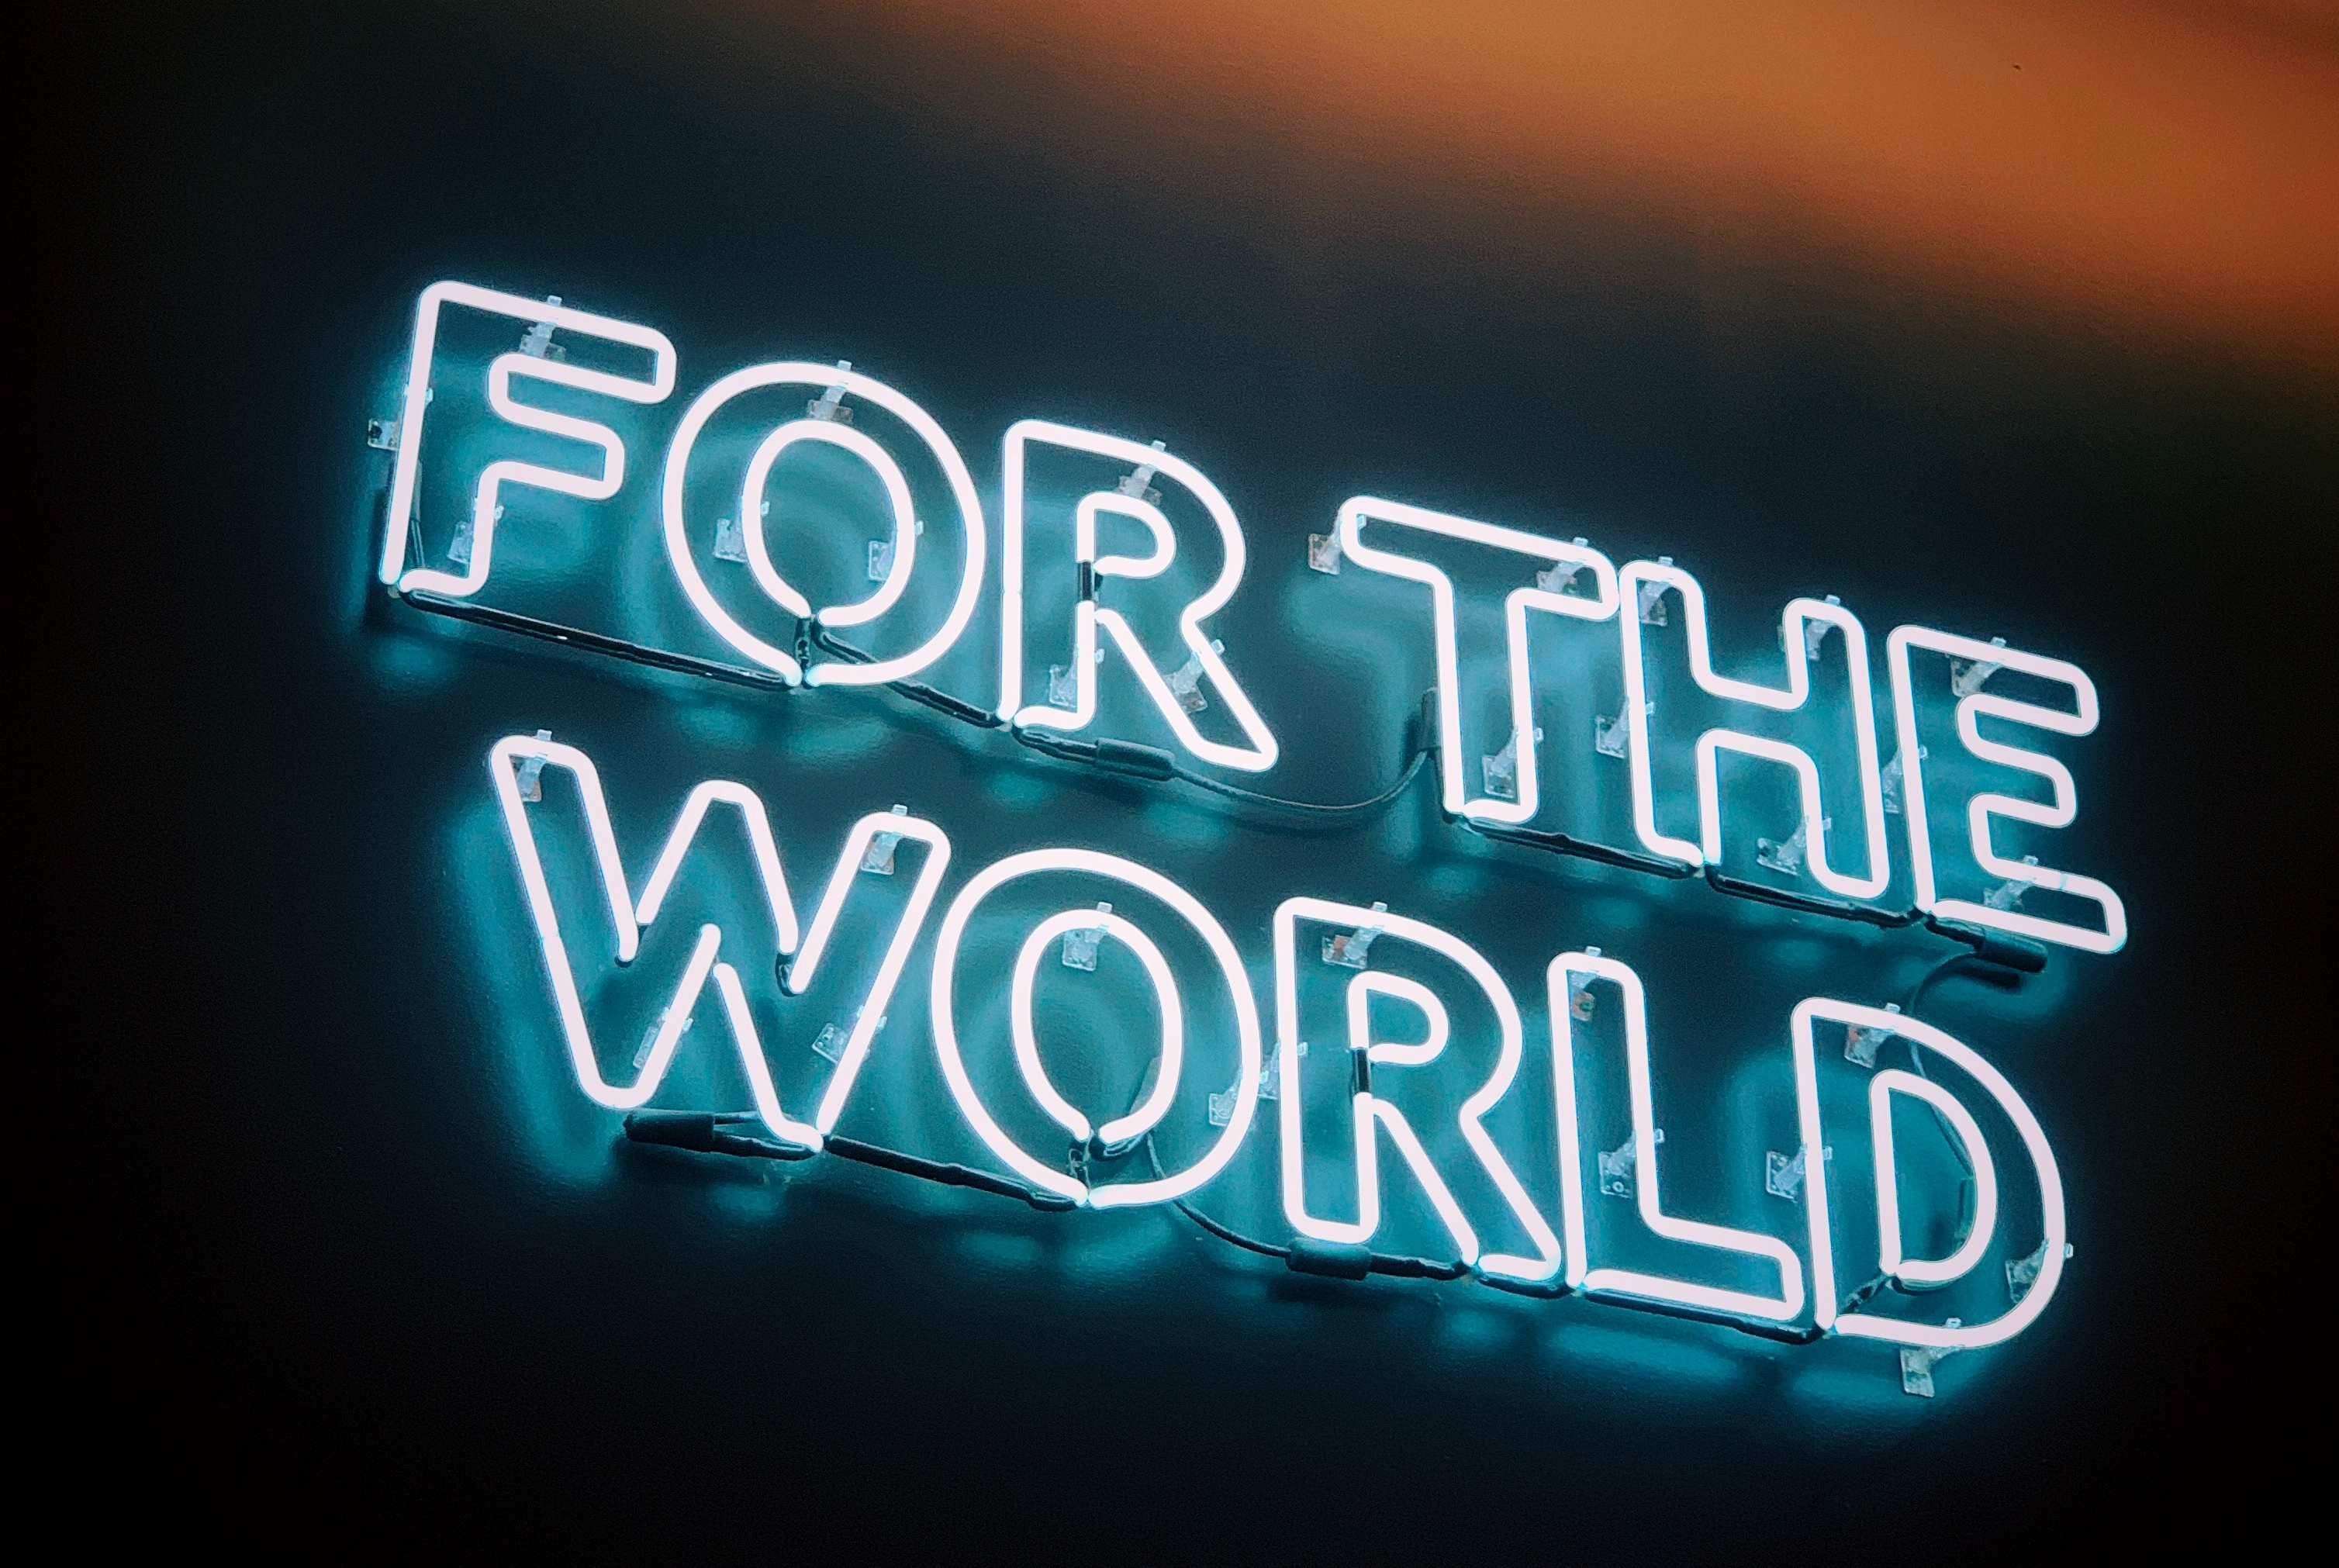 'For the World' sign